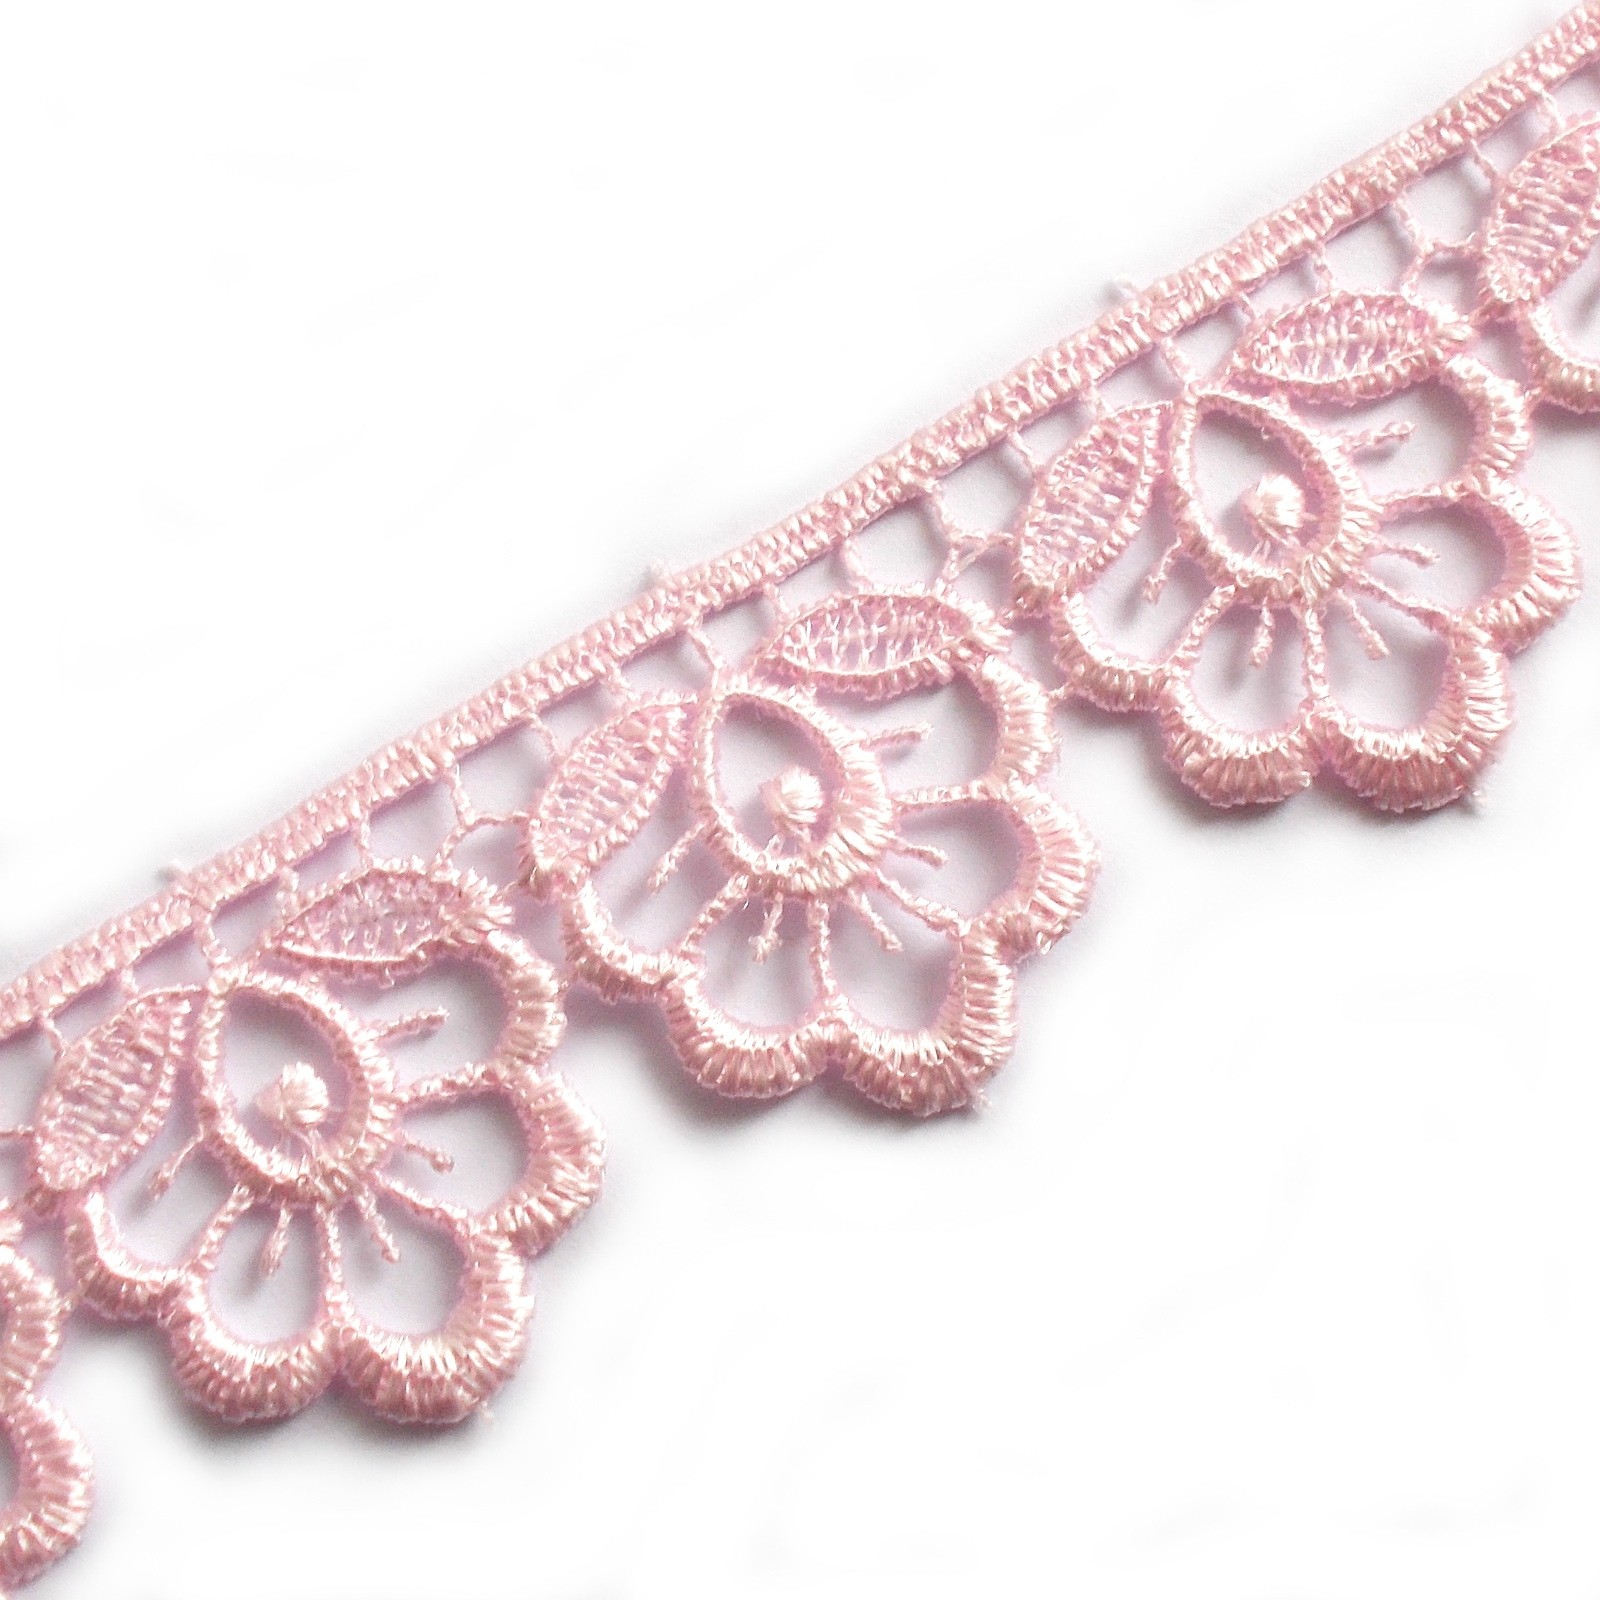 Scalloped Guipure Lace 27mm wide Pale Pink 3 metre length